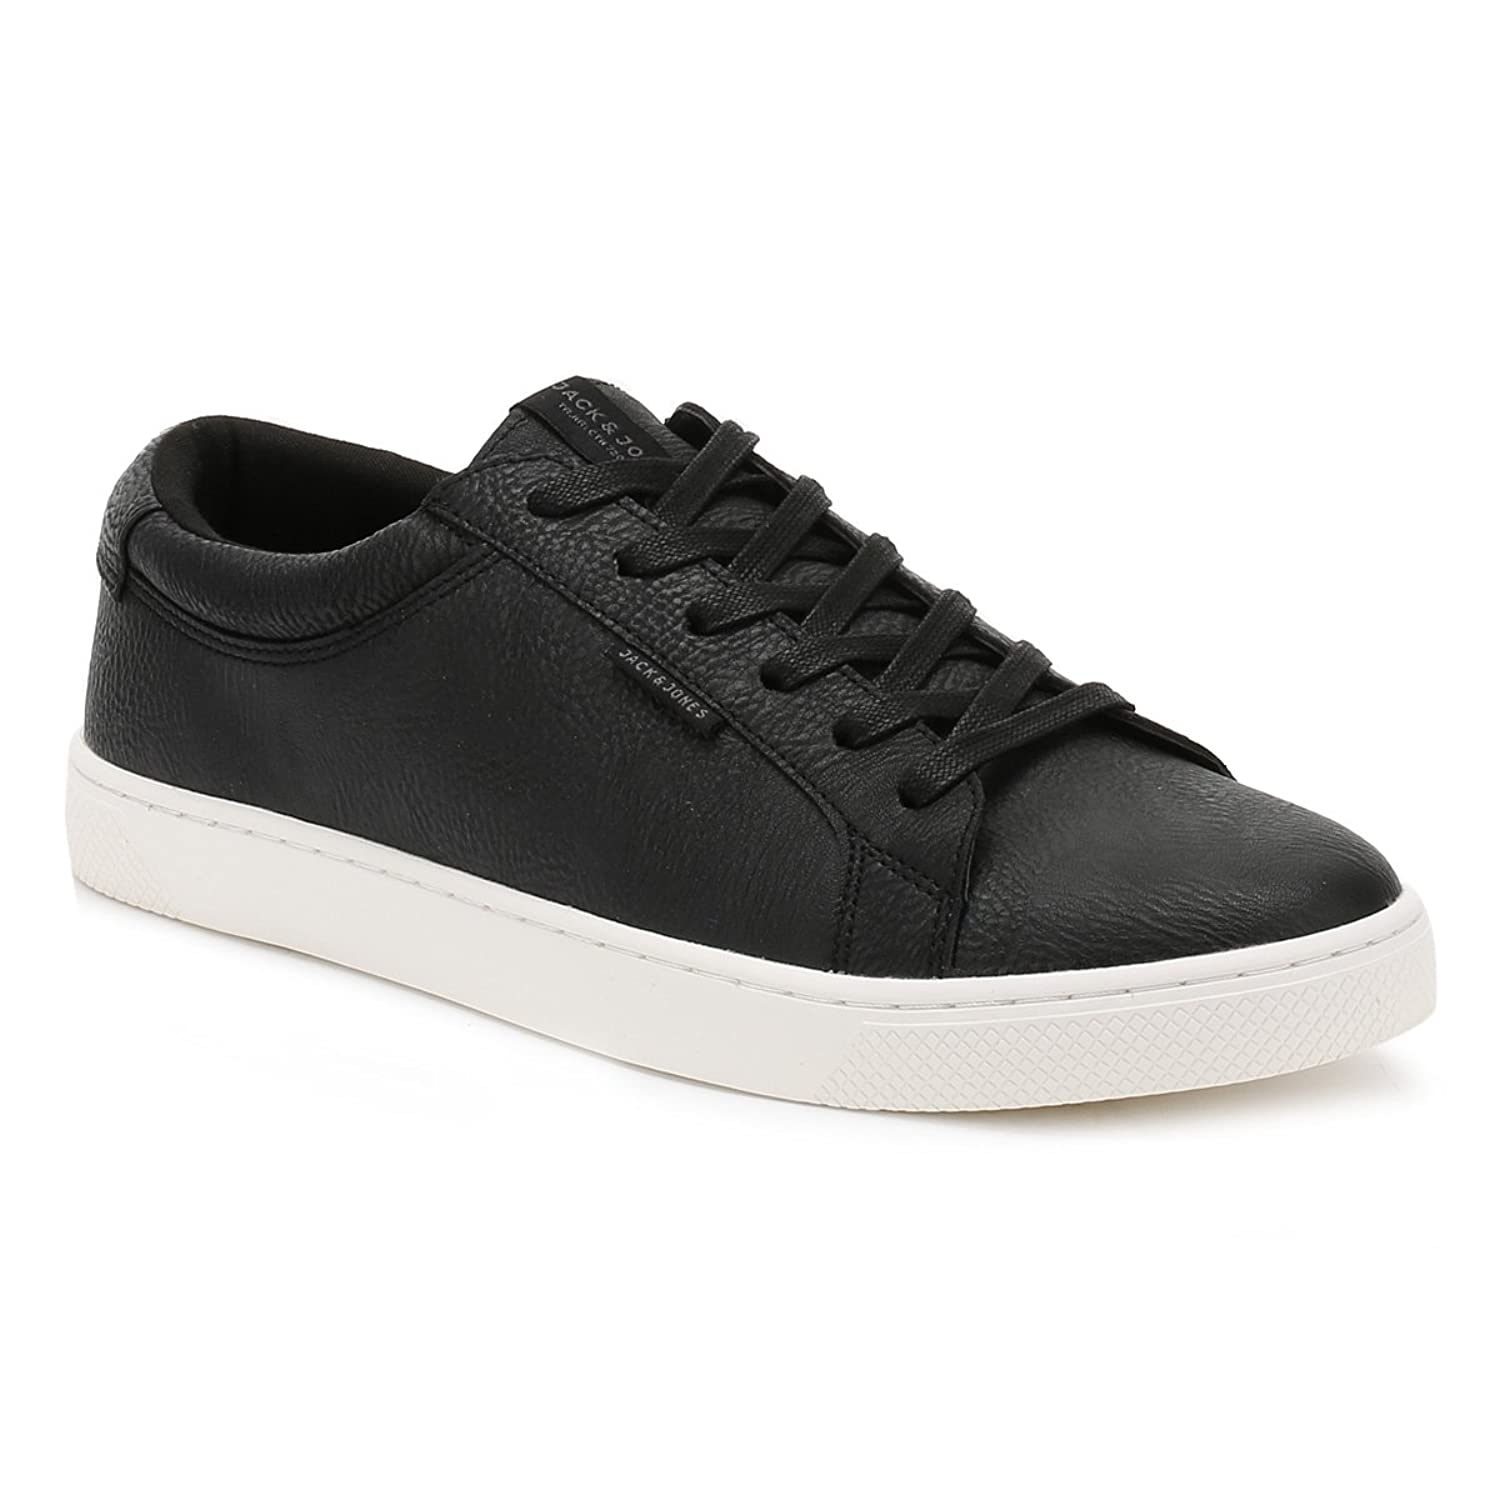 Mens Jfwmervin Textile Anthracite Low-Top Sneakers, Black (Anthracite) Jack & Jones